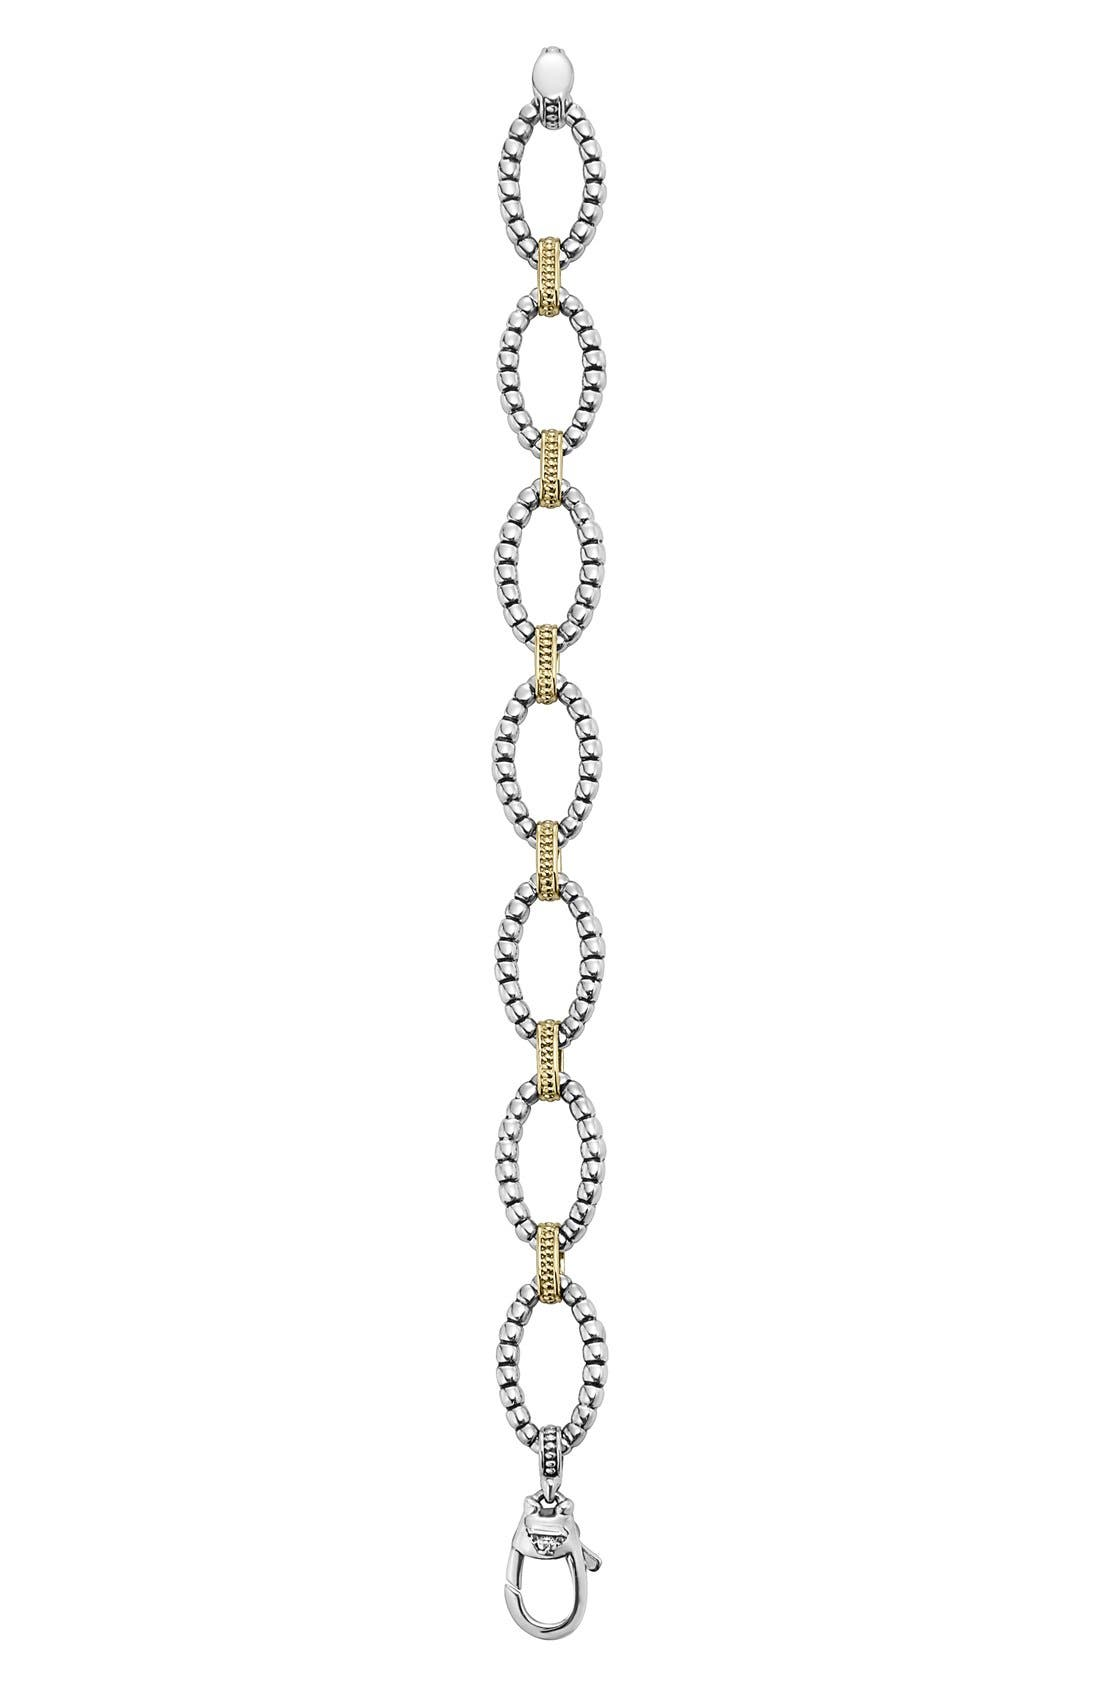 Two-Tone Link Bracelet,                             Alternate thumbnail 2, color,                             Silver/ Gold